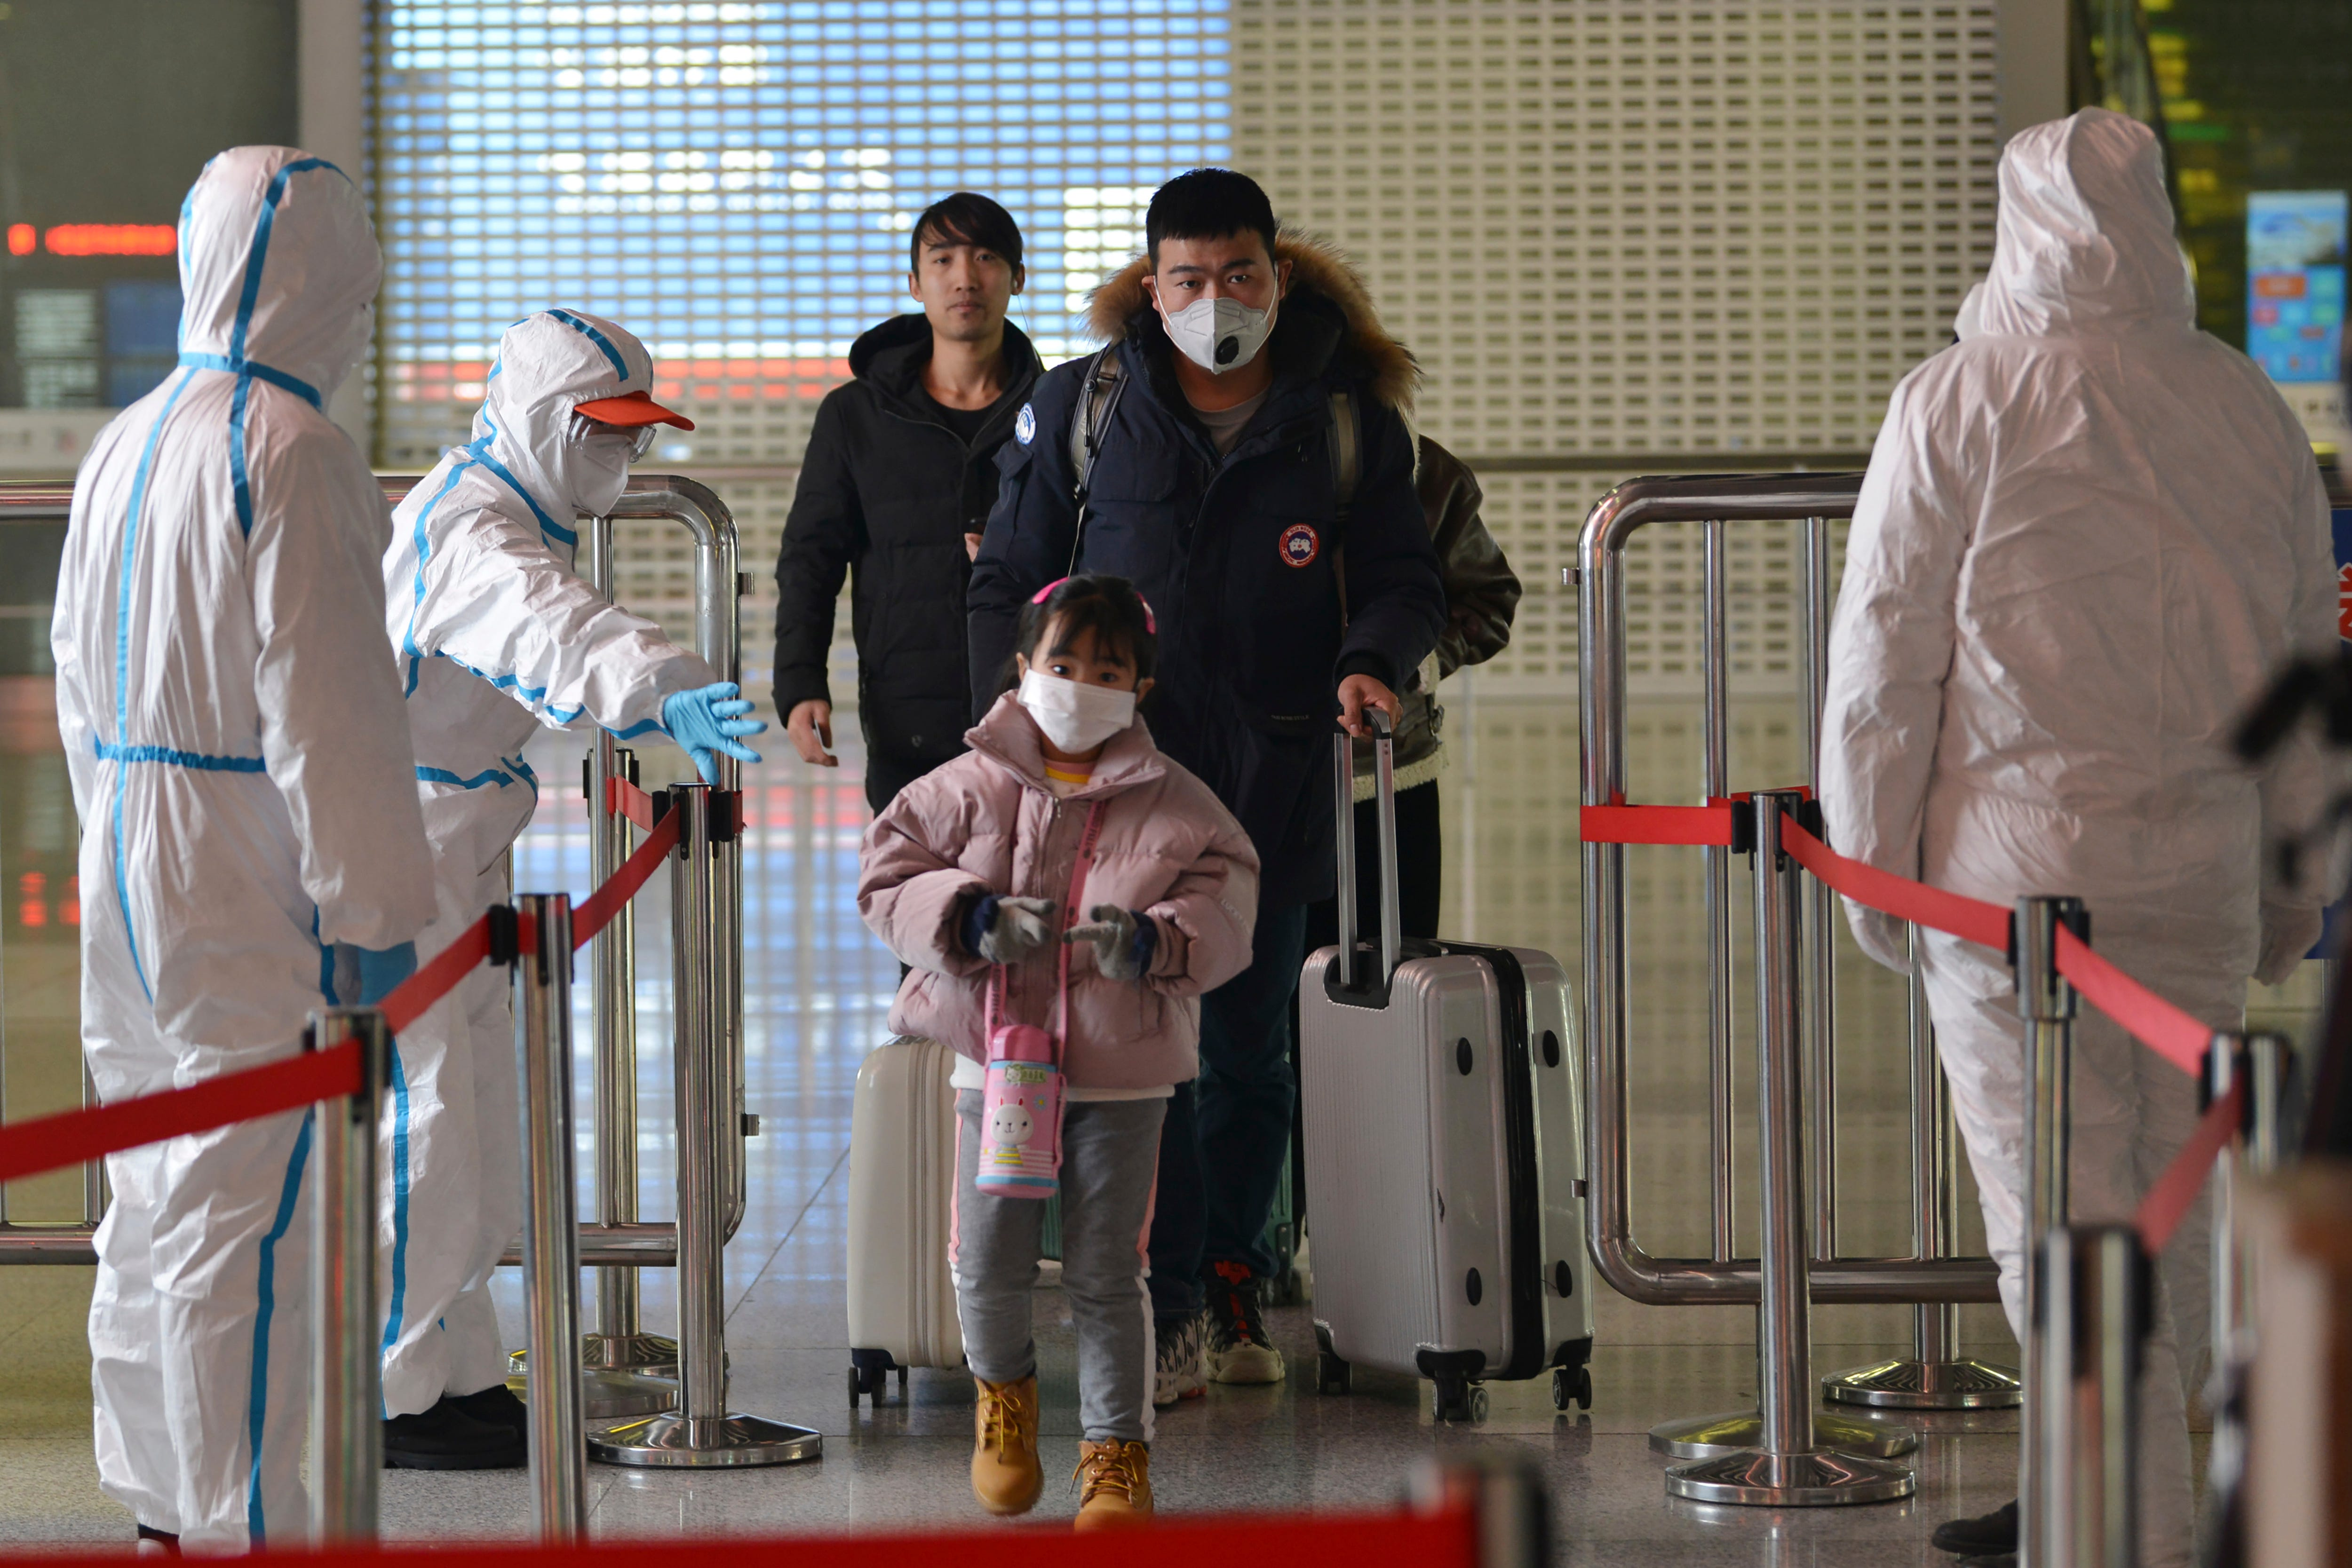 Coronavirus death toll surpasses SARS, as first American fatality reported in China